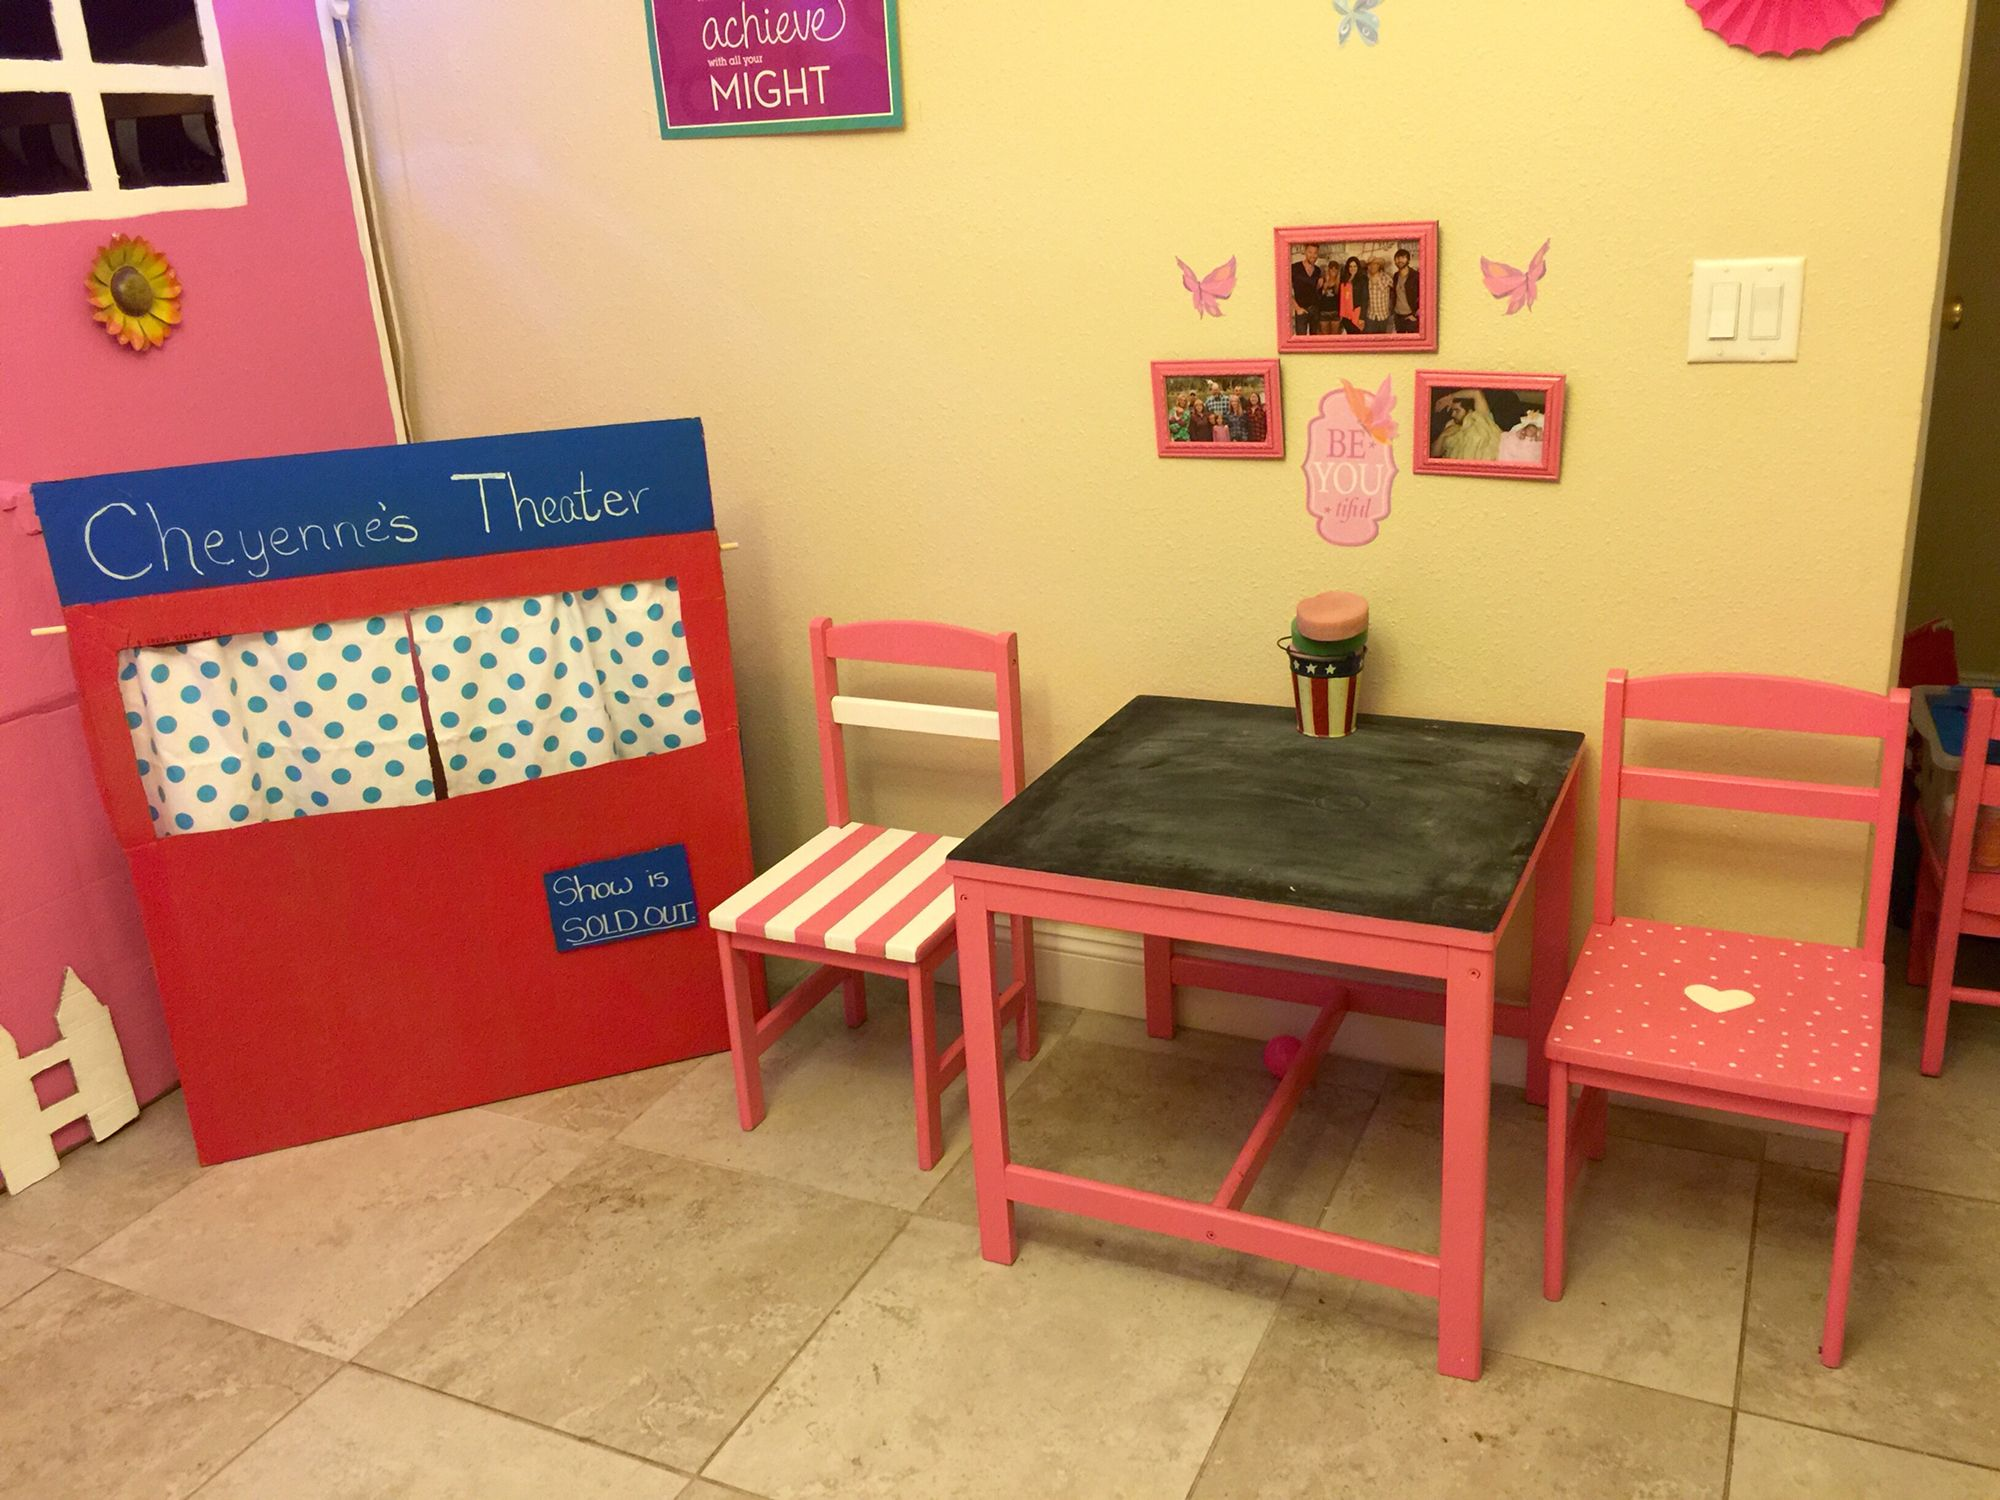 Girls Play Room Cardboard Puppet Theatre And Hand Painted Chairs And Chalkboard Table Hand Painted Chairs Playroom Painted Chairs